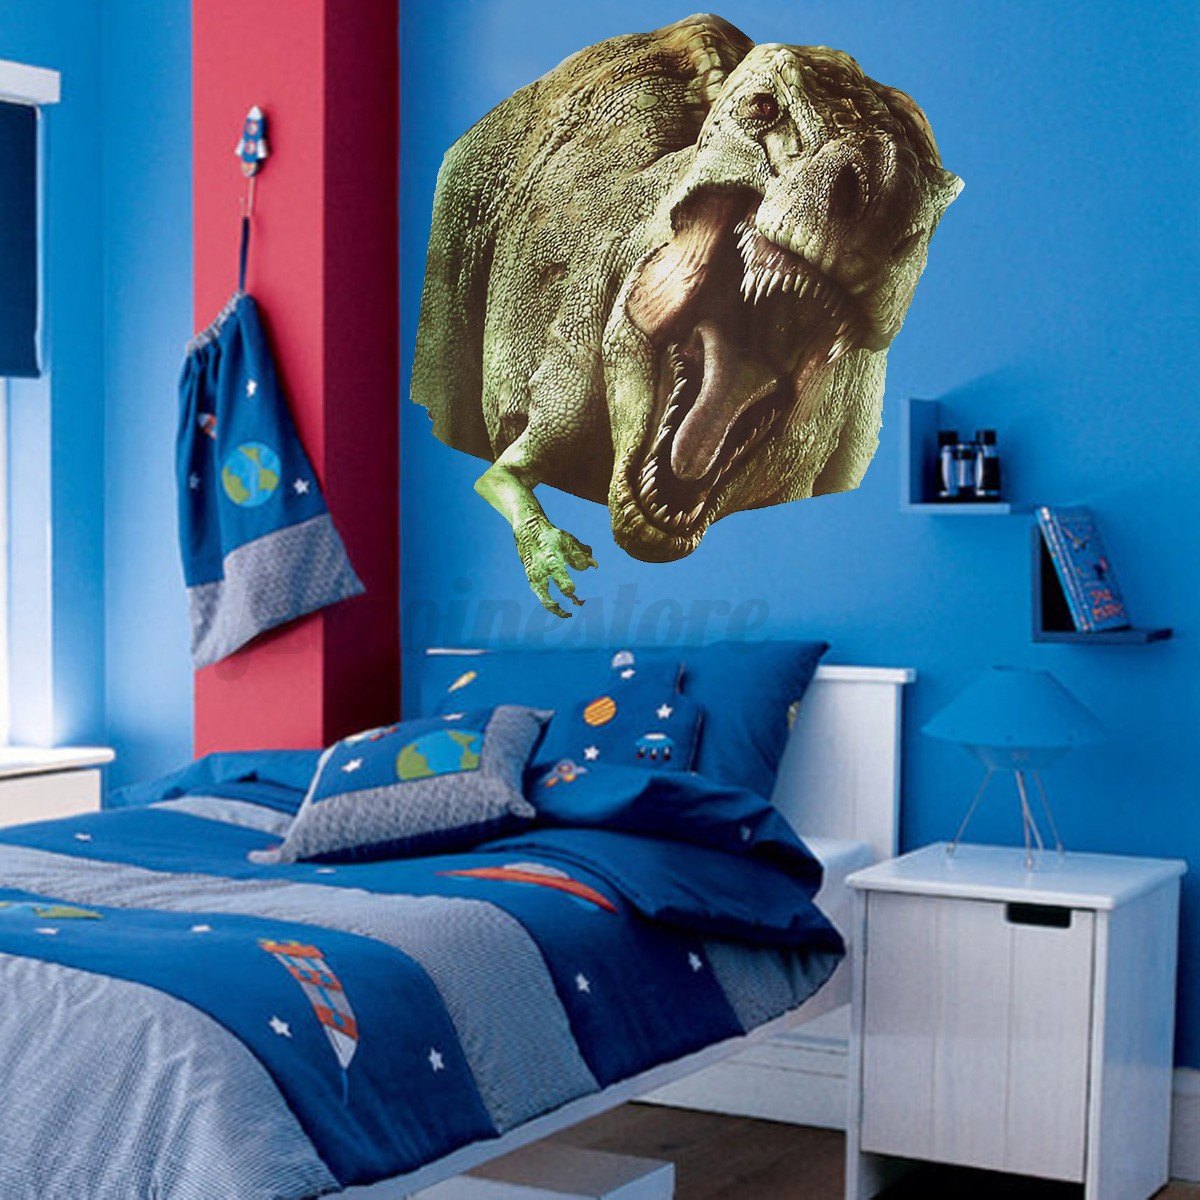 3D Jurassic World Park Dinosaur Wall Sticker Kids Room